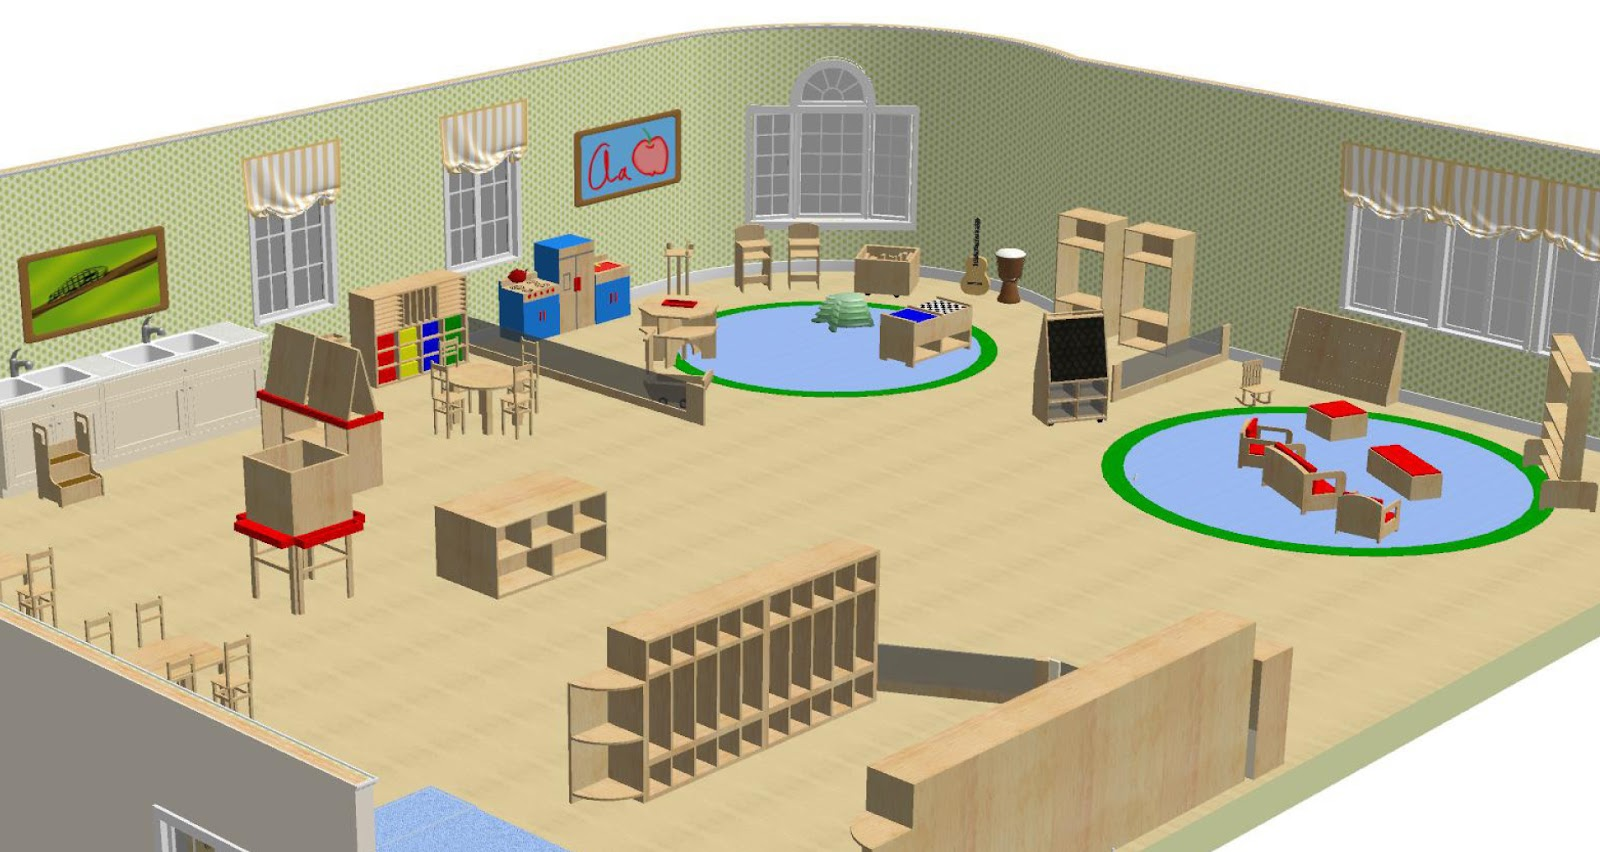 Classroom Design In Preschool ~ Wood designs